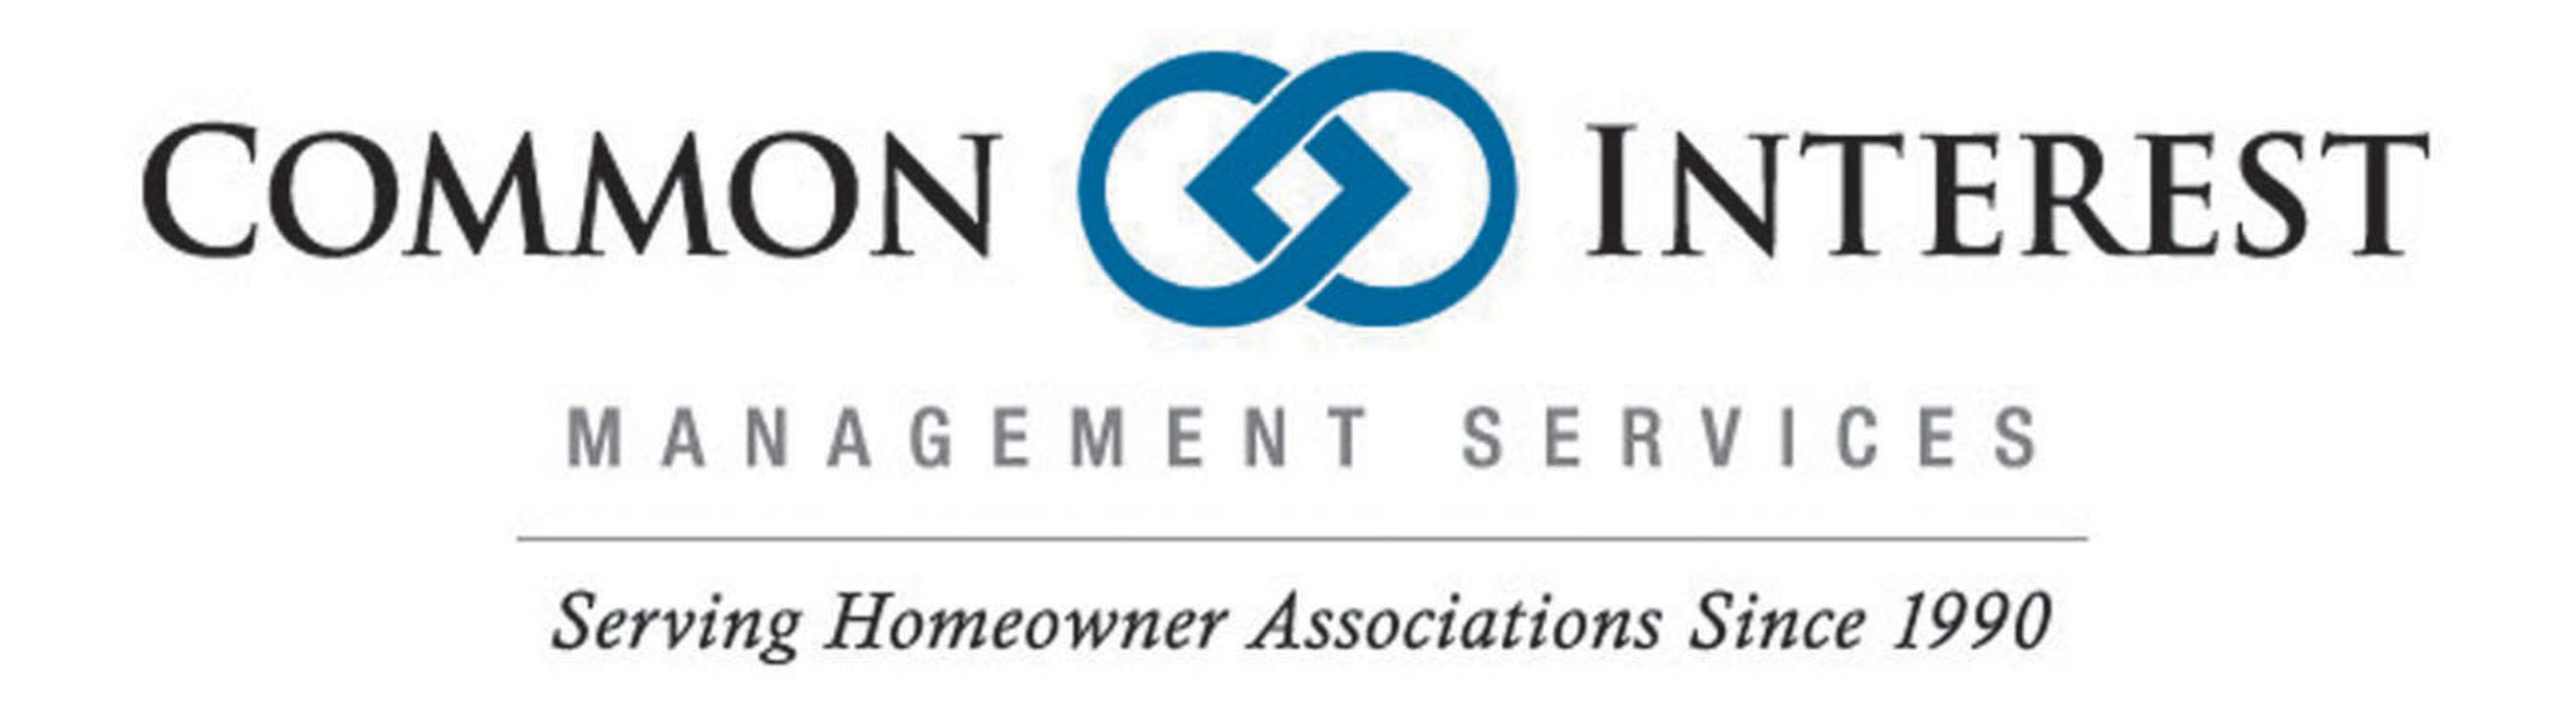 Founded in 1990, Common Interest Management is a leading provider of professional association management services to homeowners associations (HOAs) throughout the Bay Area with offices in Danville, San Mateo and Campbell. Common Interest Management specializes in the management of master-planned, single family home, condominium, mixed use residential and mid-rise communities and now serves more than 240 communities in Northern California.